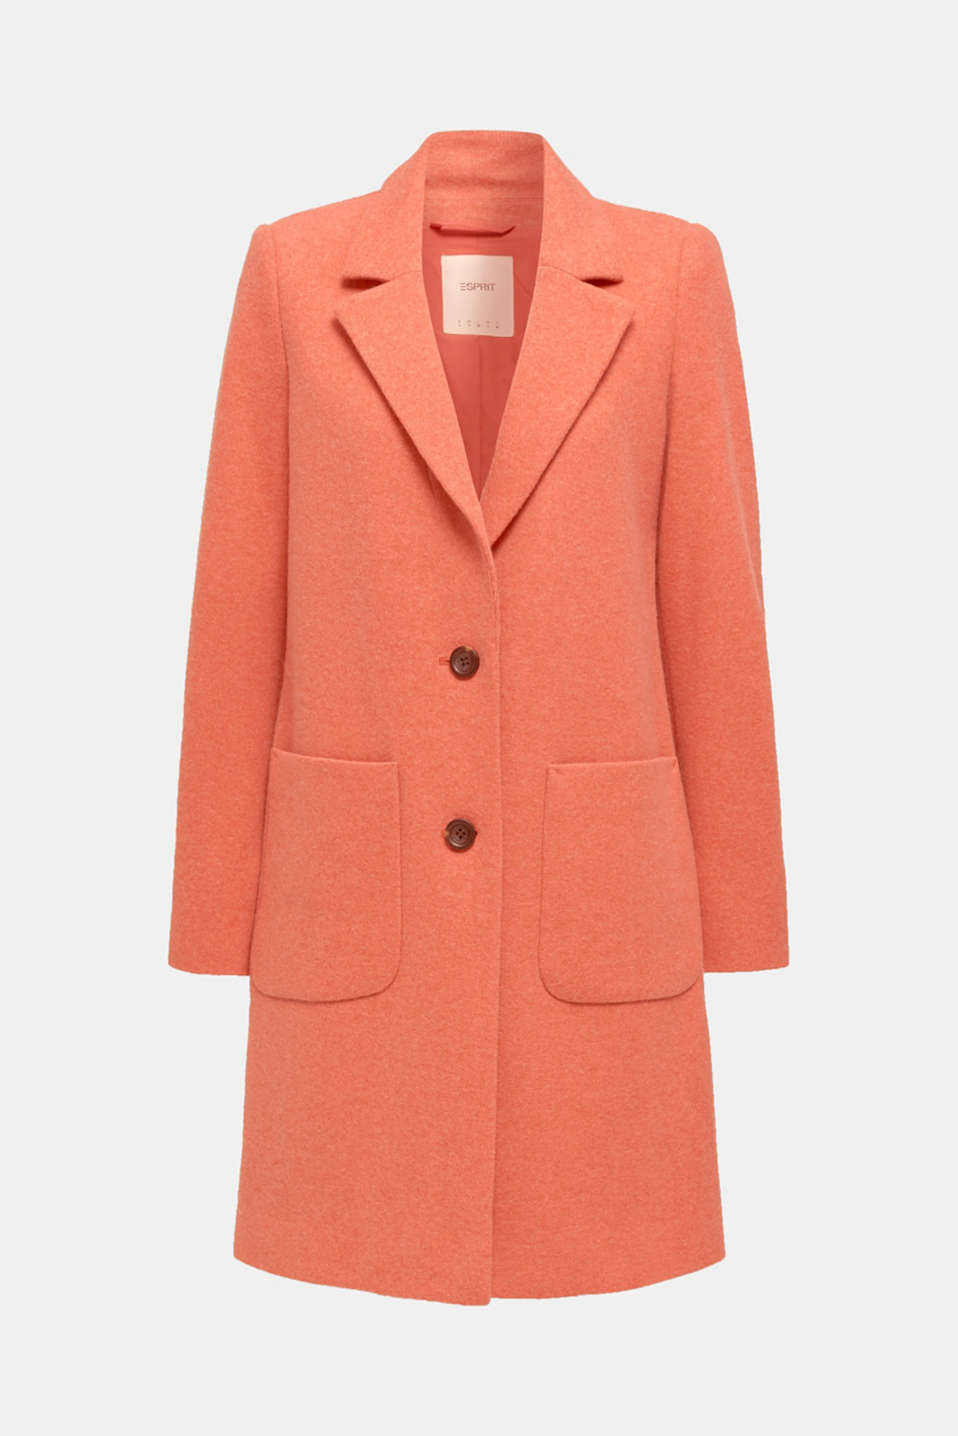 Made of blended wool: Coat in a knit look, BURNT ORANGE, detail image number 6